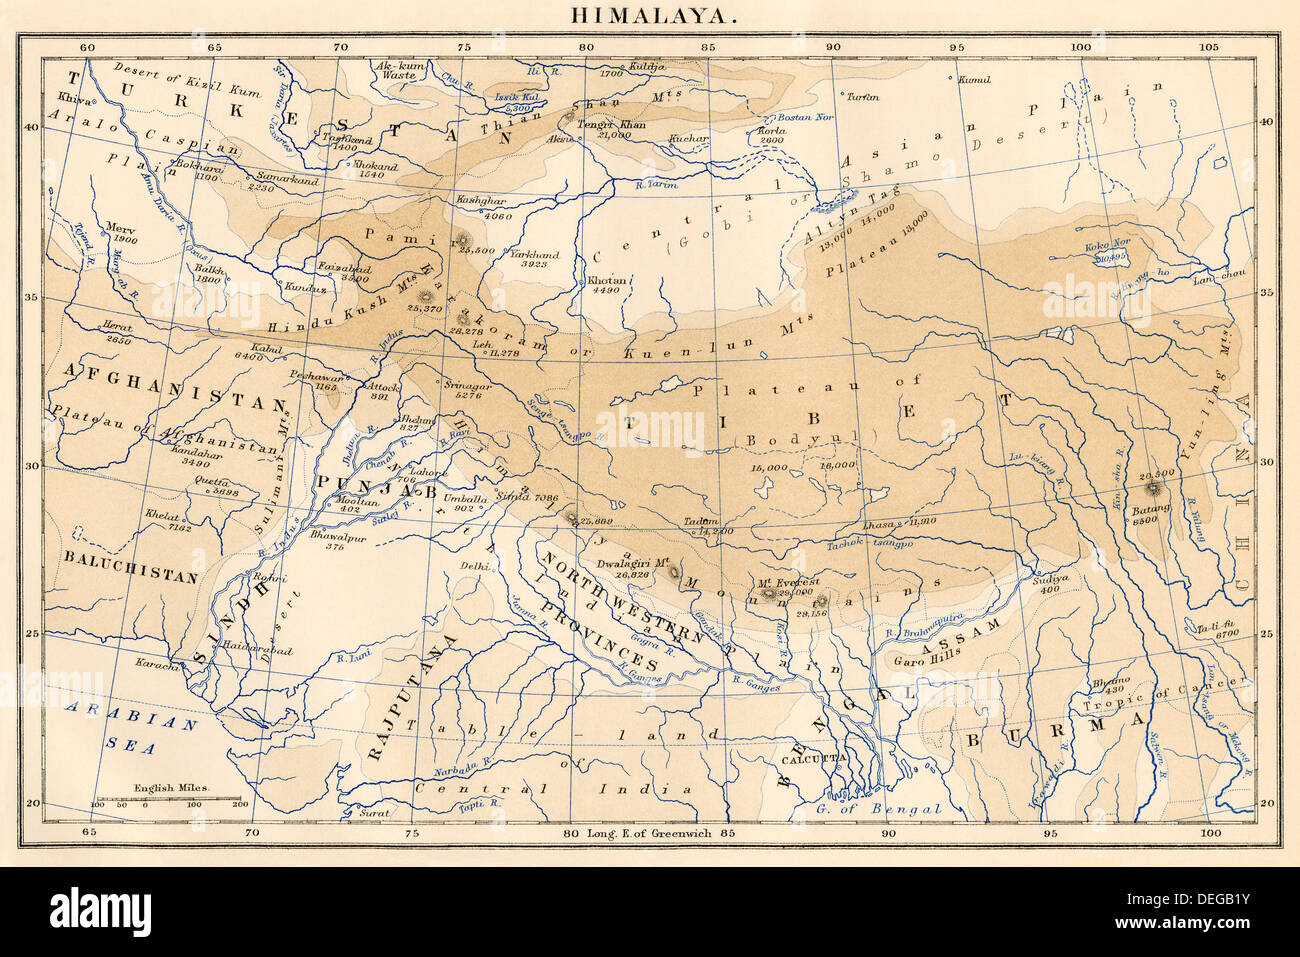 Asia map stock photos asia map stock images alamy map of himalaya region of asia 1870s color lithograph stock image gumiabroncs Gallery